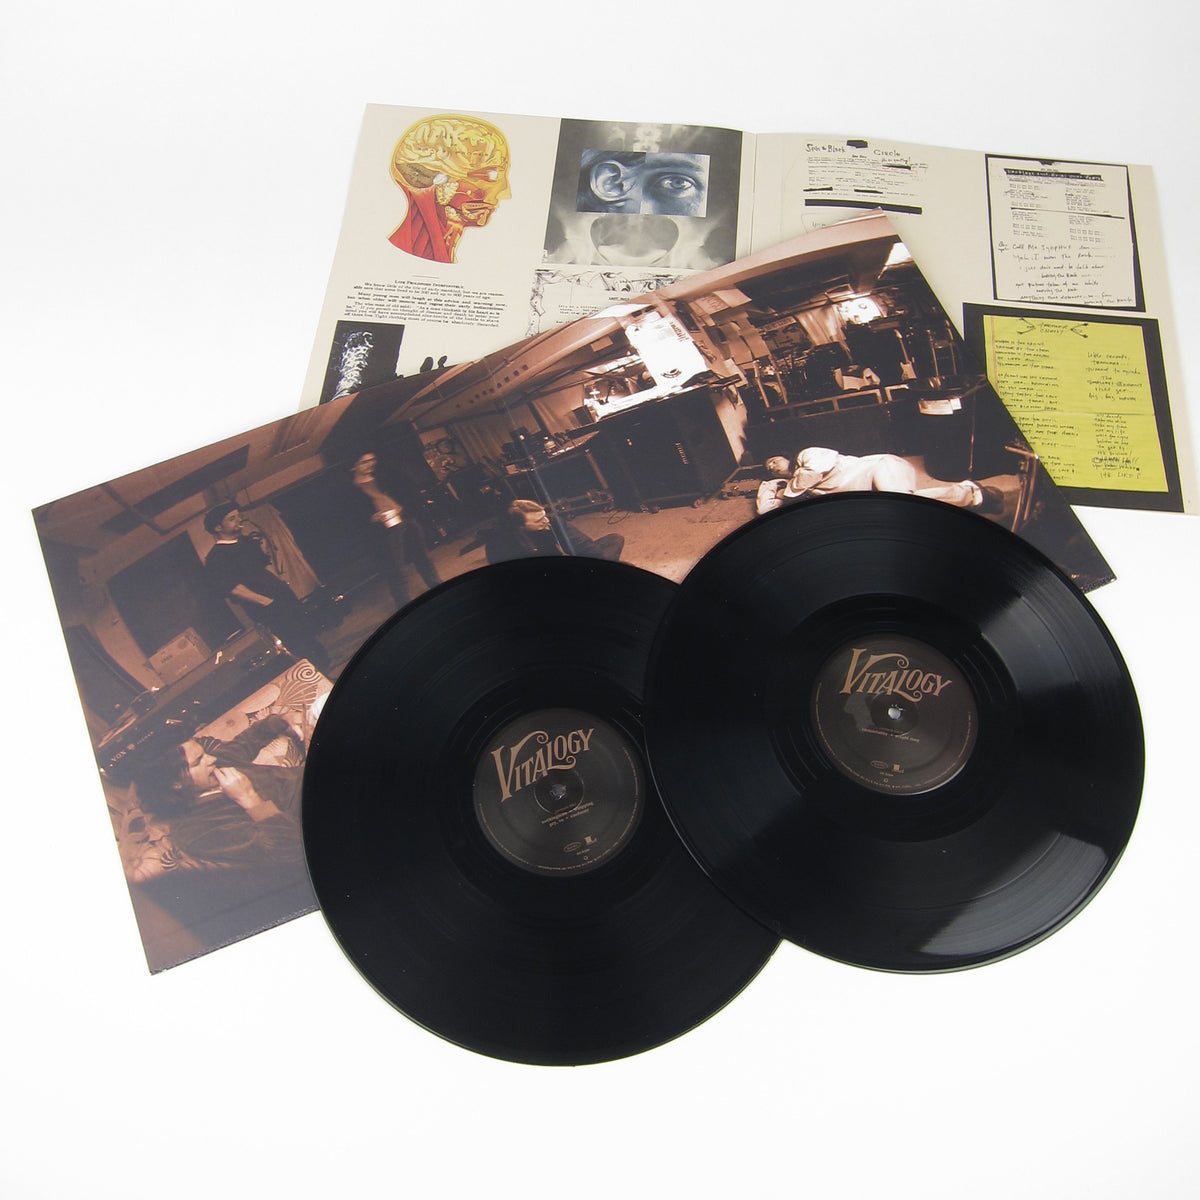 Pearl Jam: 180g Vinyl LP Album Pack (Ten, Vs., Vitalogy)